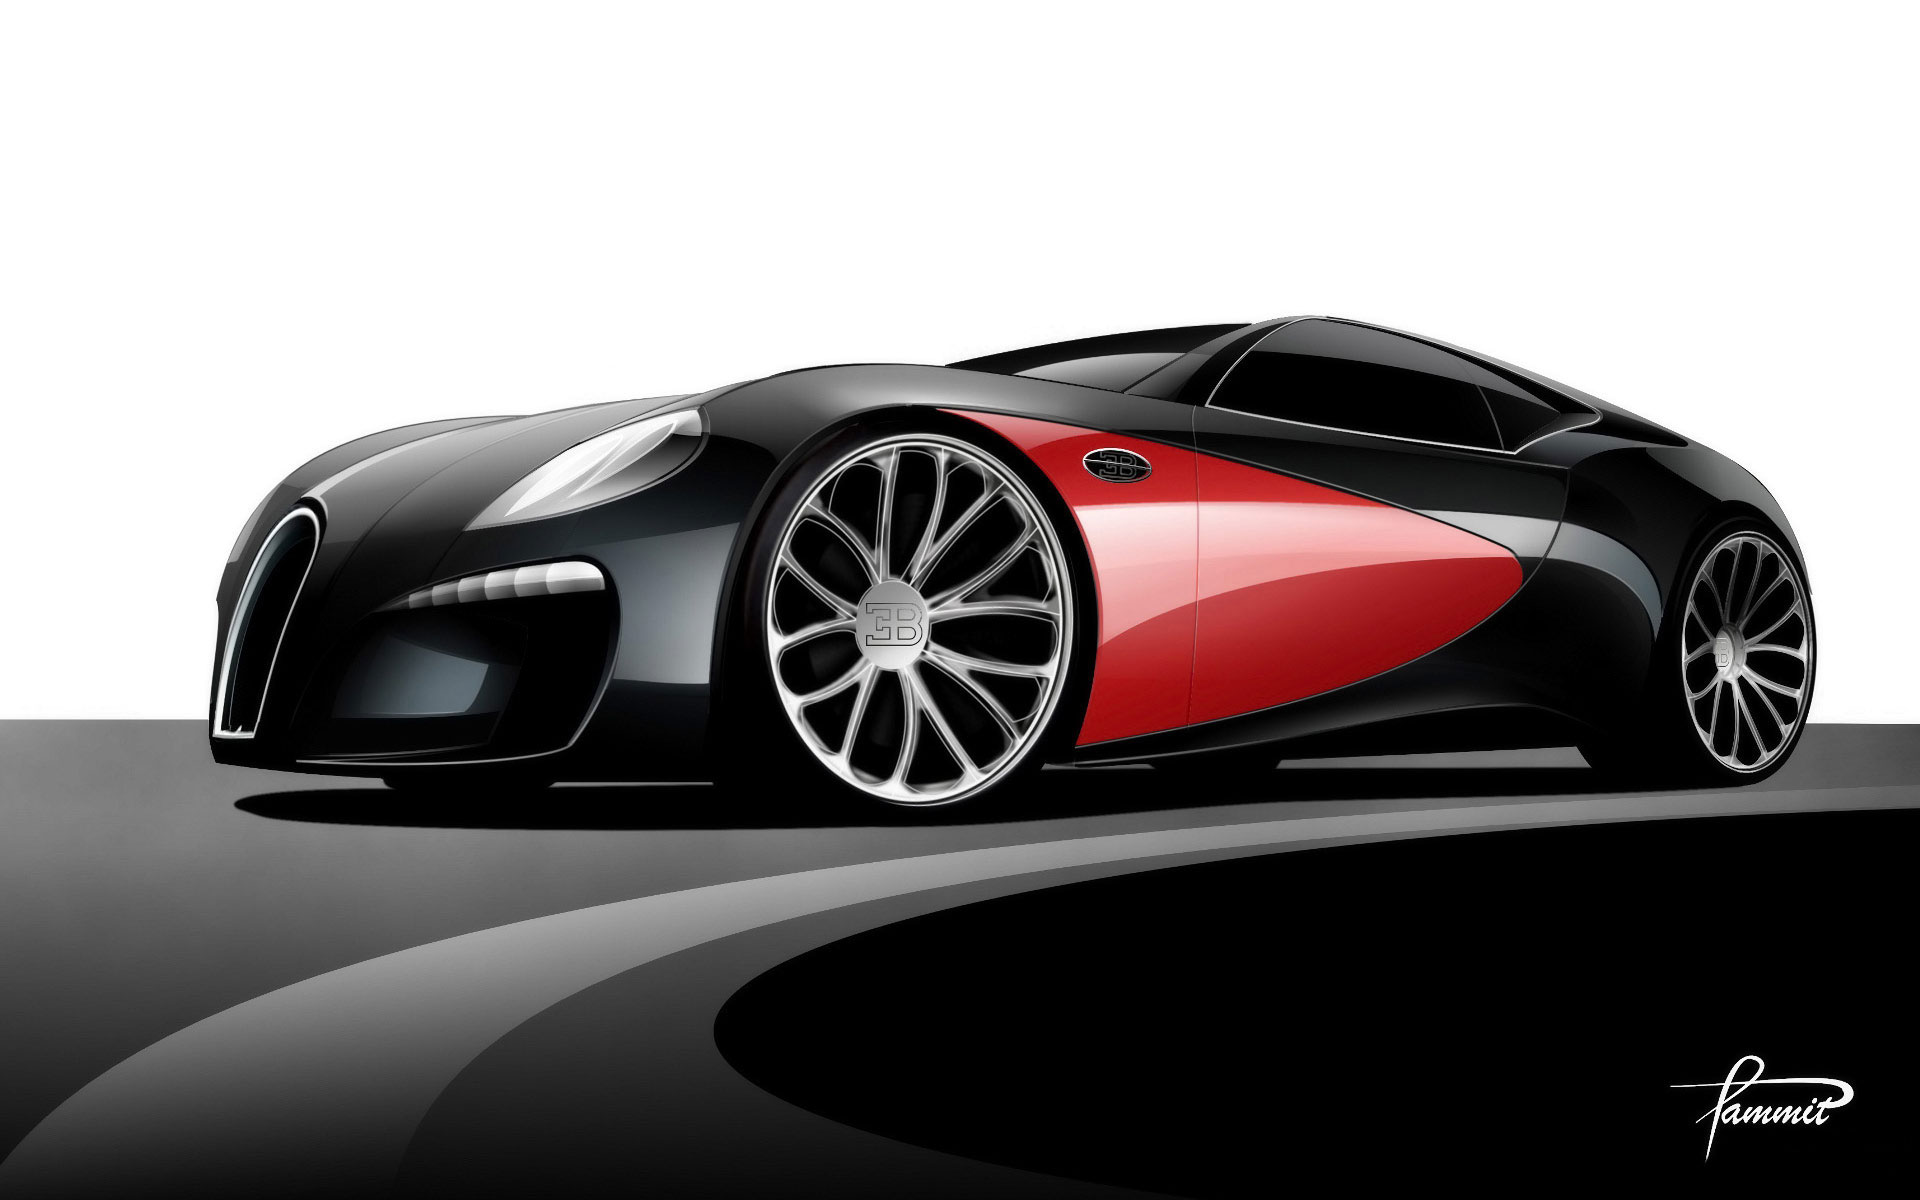 HD Super Car Wallpaper   pic 48   PhotosJunction 1920x1200